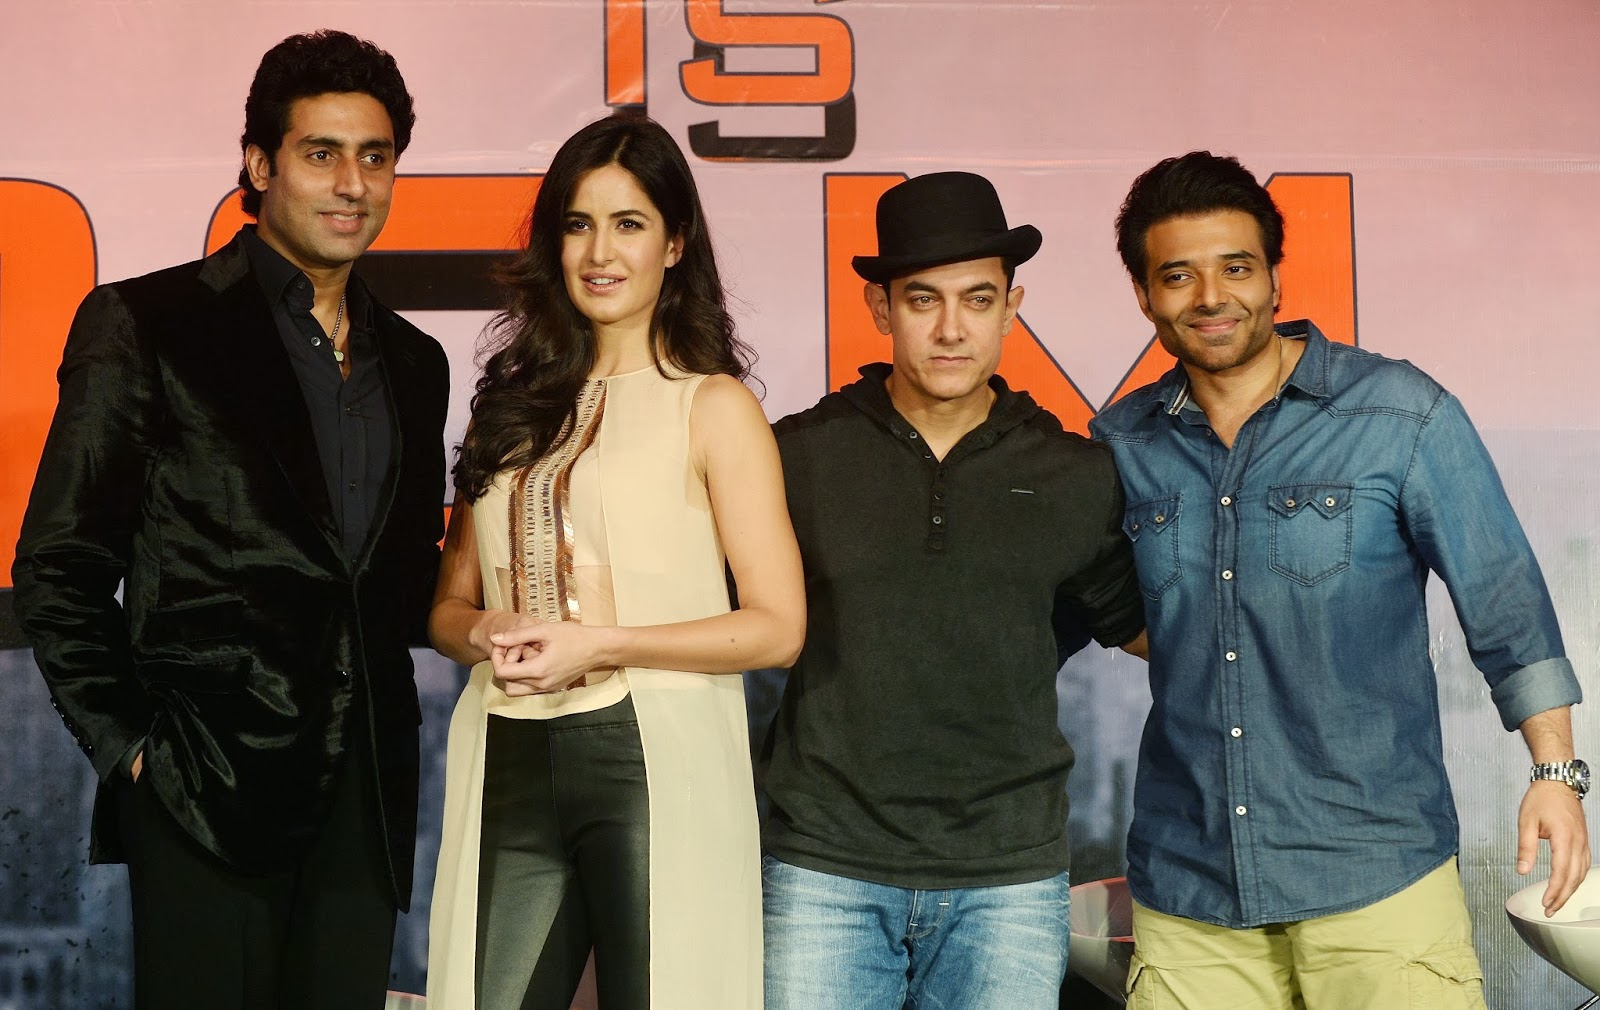 Aamir Khan, Katrina Kaif, Abhishek Bachchan, Uday Chopra, Bollywood, Showbiz, Dhoom 3, Film, Movie, 500 crores, India, Entertainment, Film, Rs, Rupees,